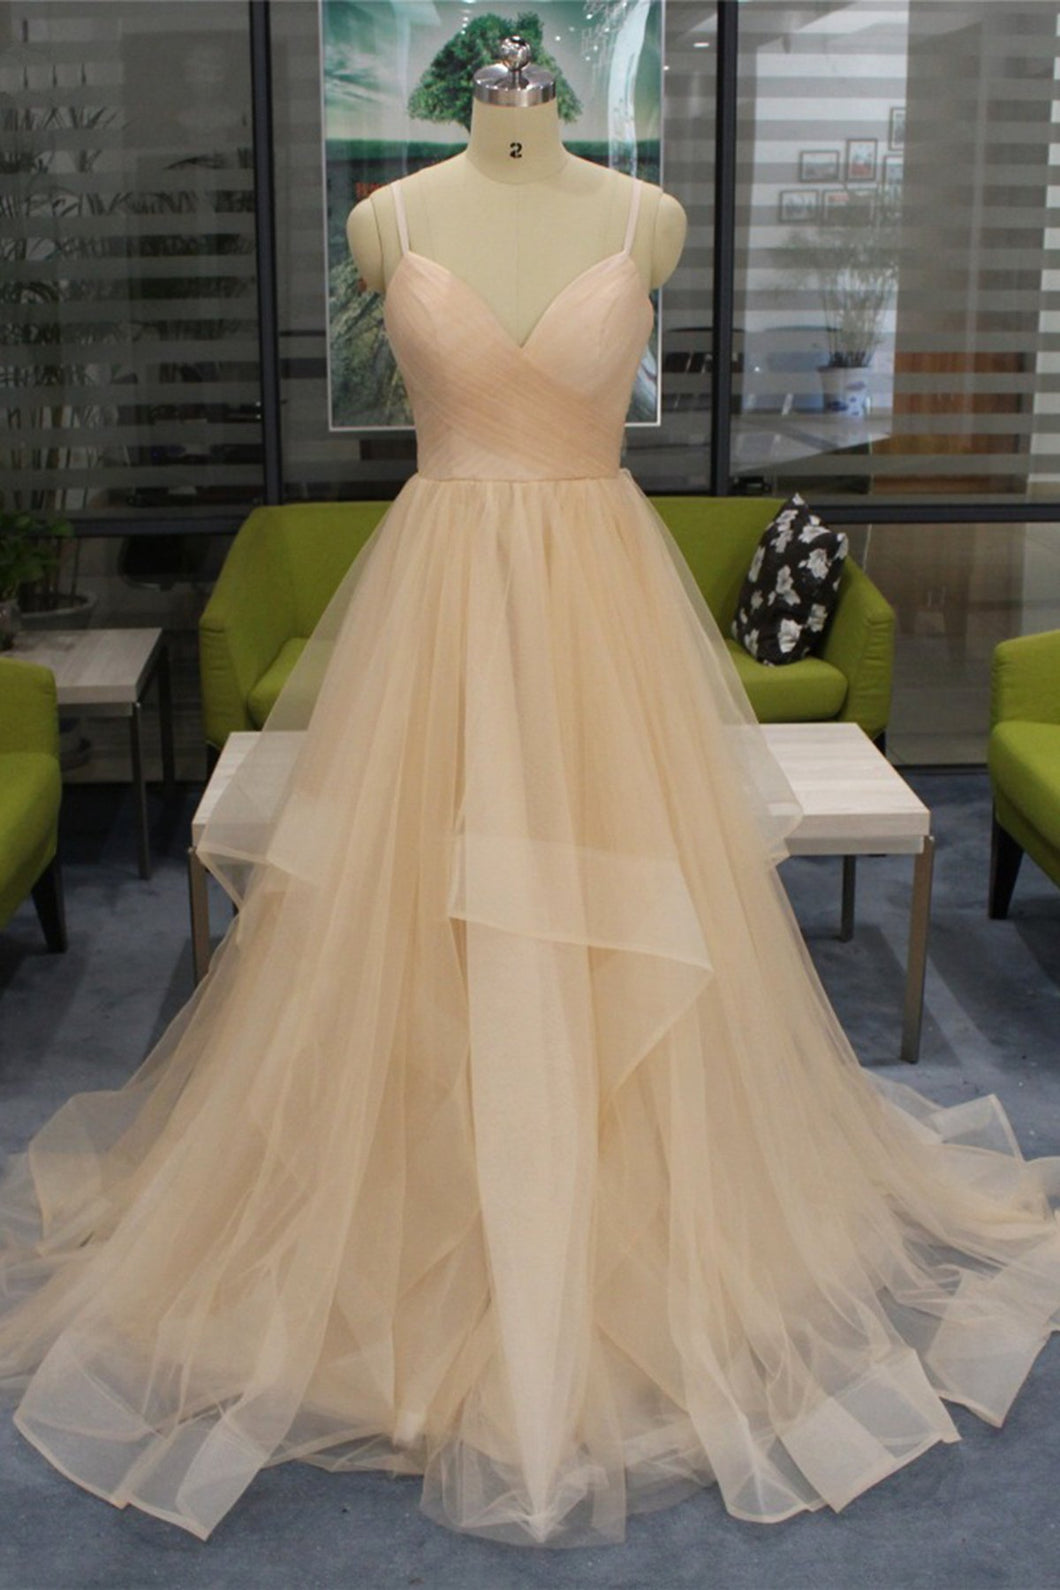 2019 Prom Dresses | Champagne Tulle Spaghetti Long Open Back Ruffles Prom Dress